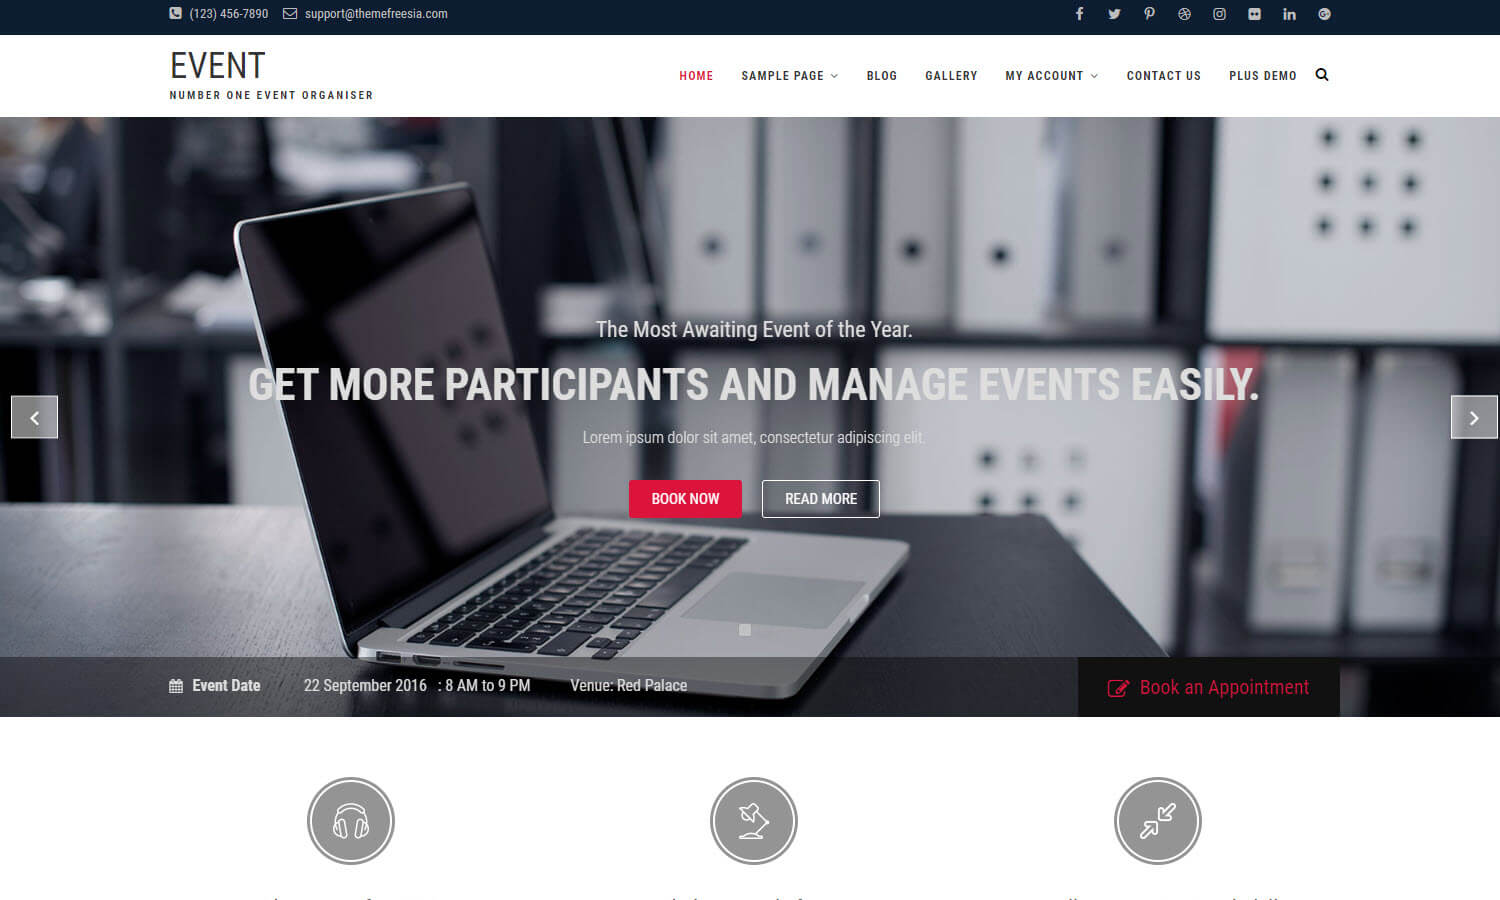 Event screenshot